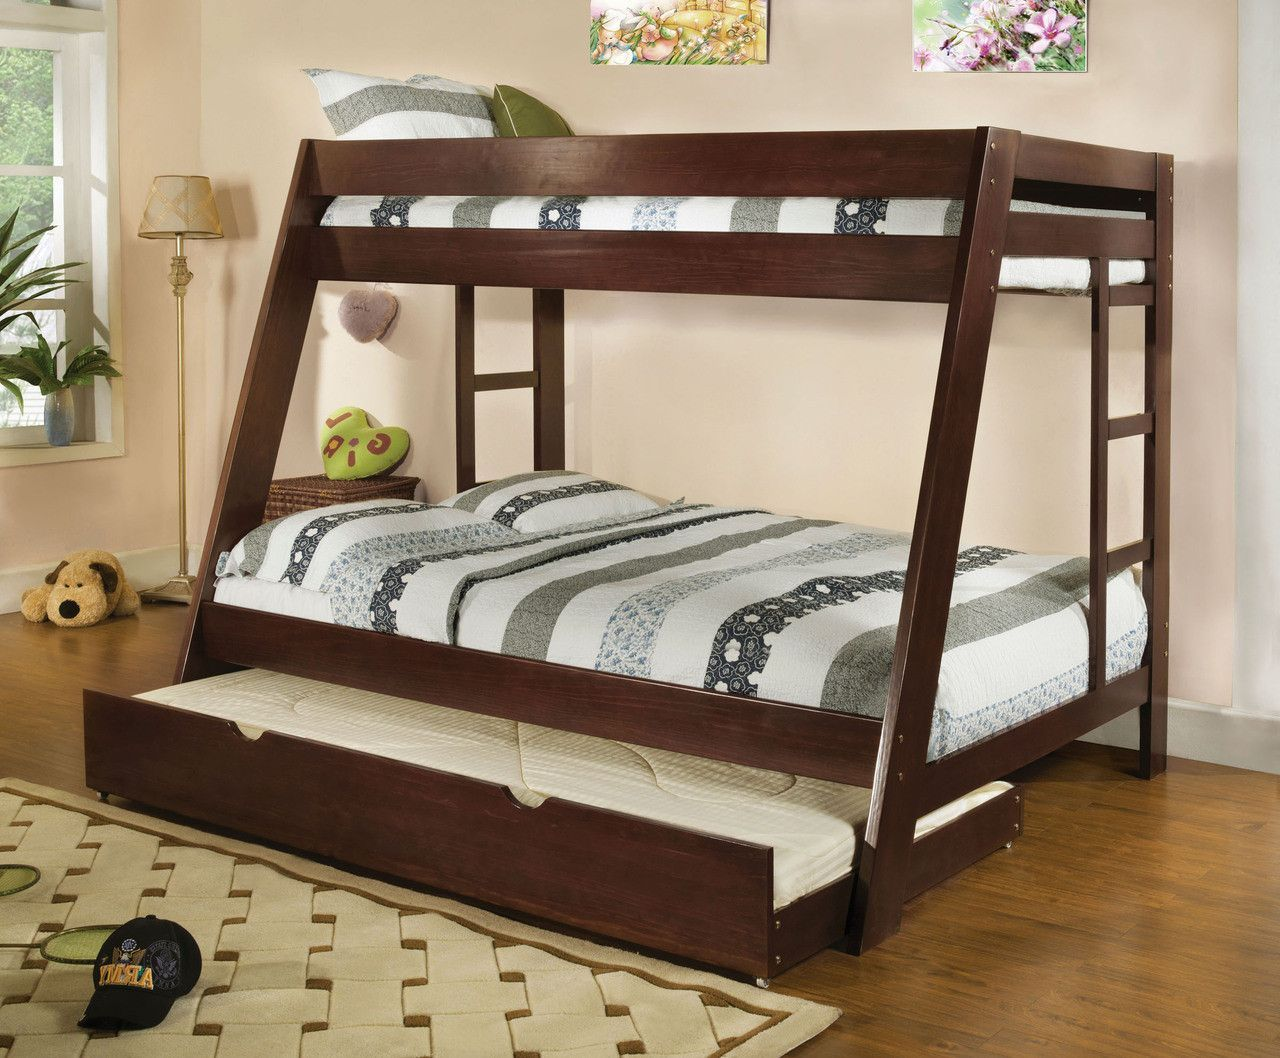 Twin Full Bunk Bed Arizona Collection Queen Bunk Beds Bunk Bed